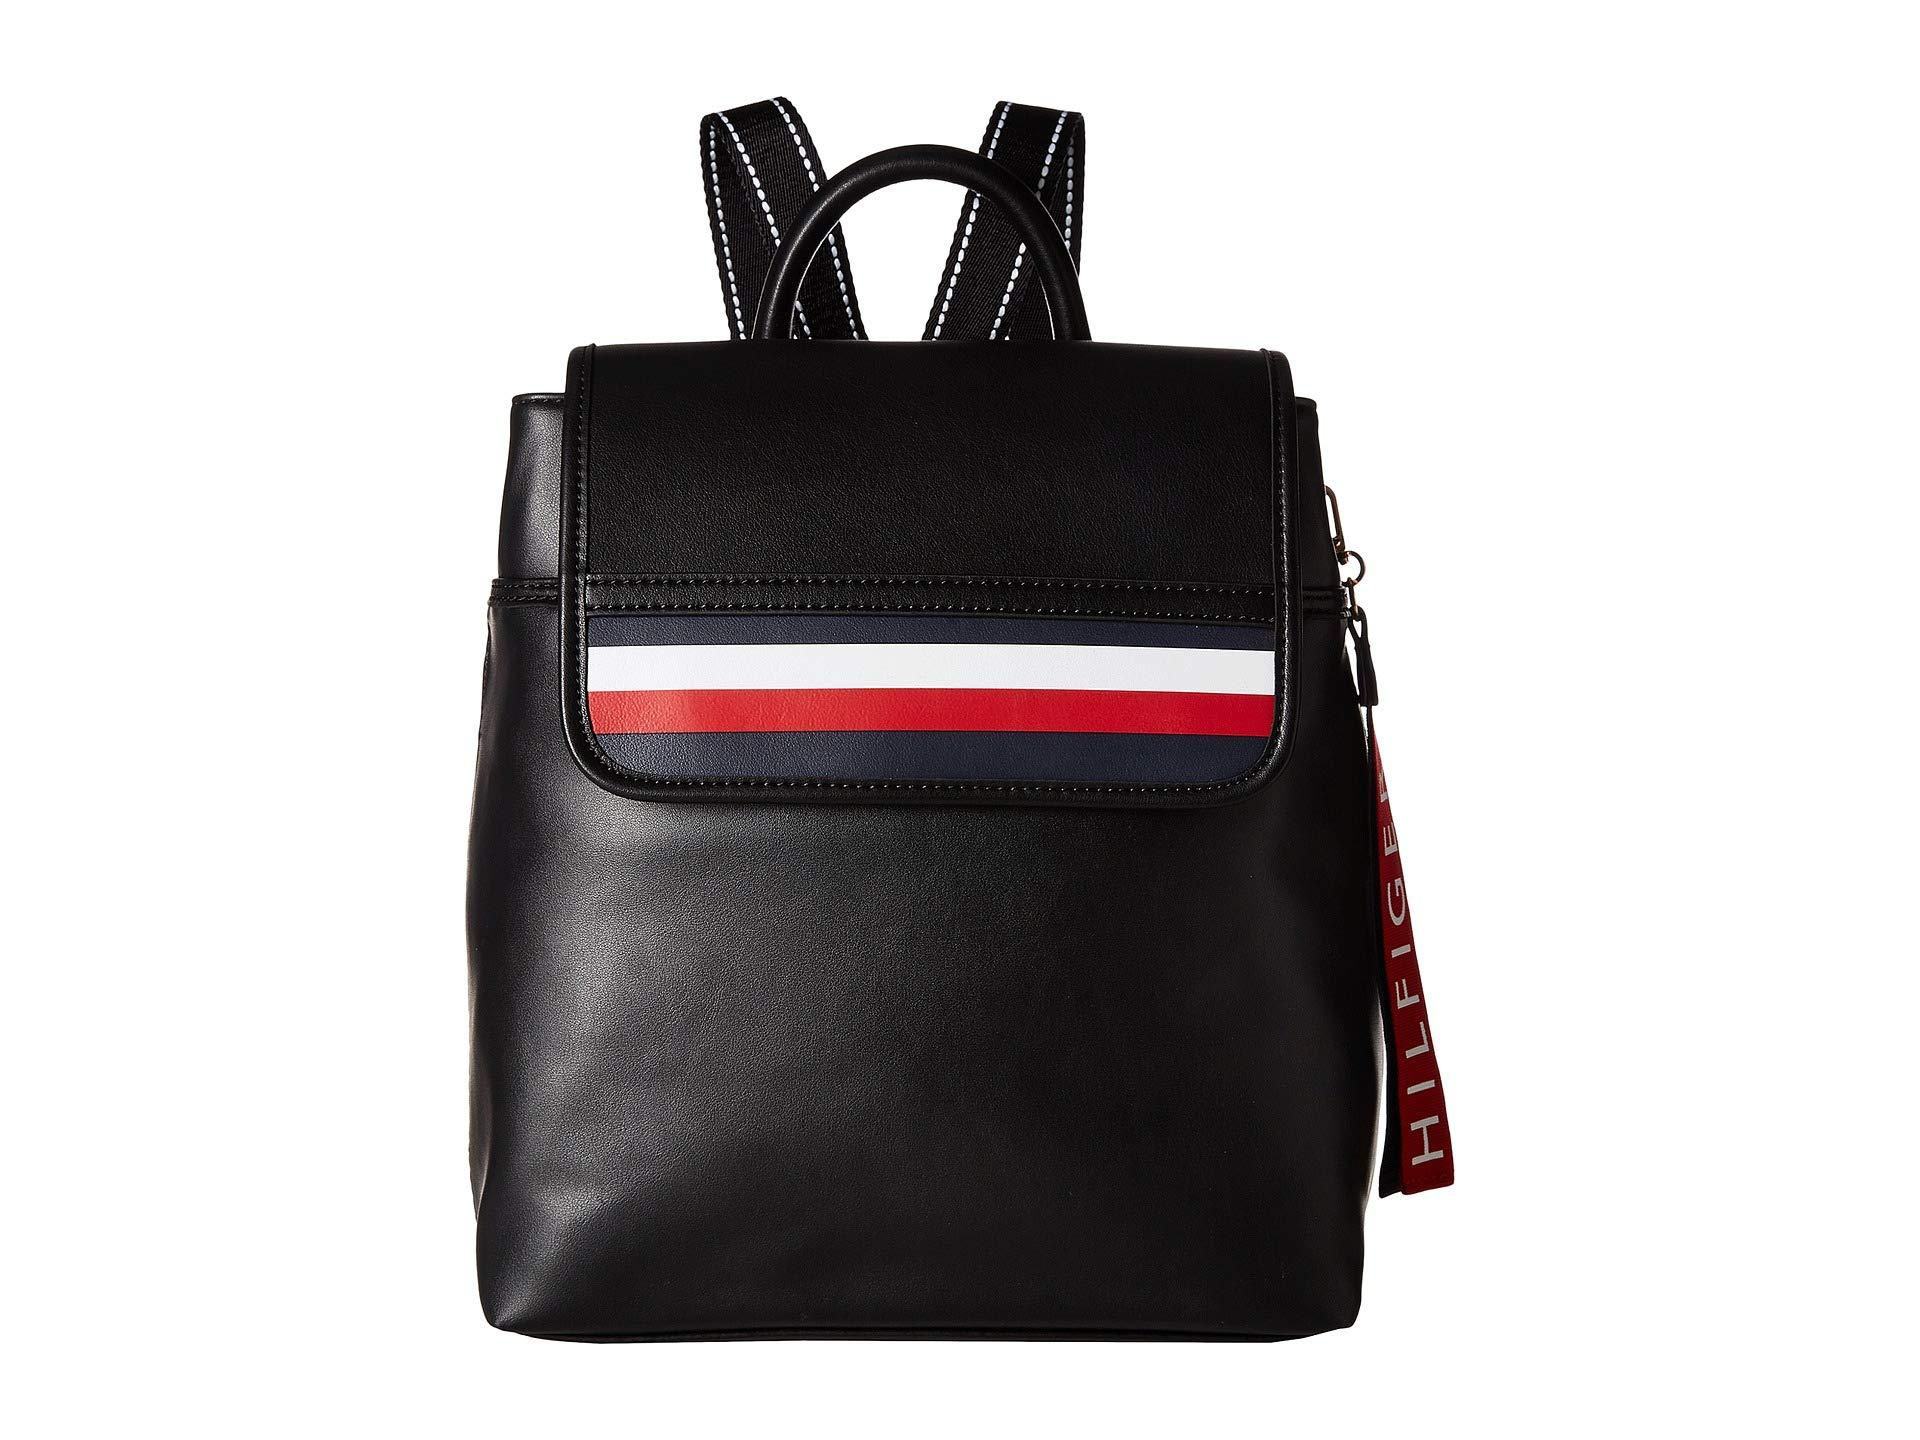 0db166cd13 Lyst - Tommy Hilfiger Gianna Smooth Pvc Backpack in Black